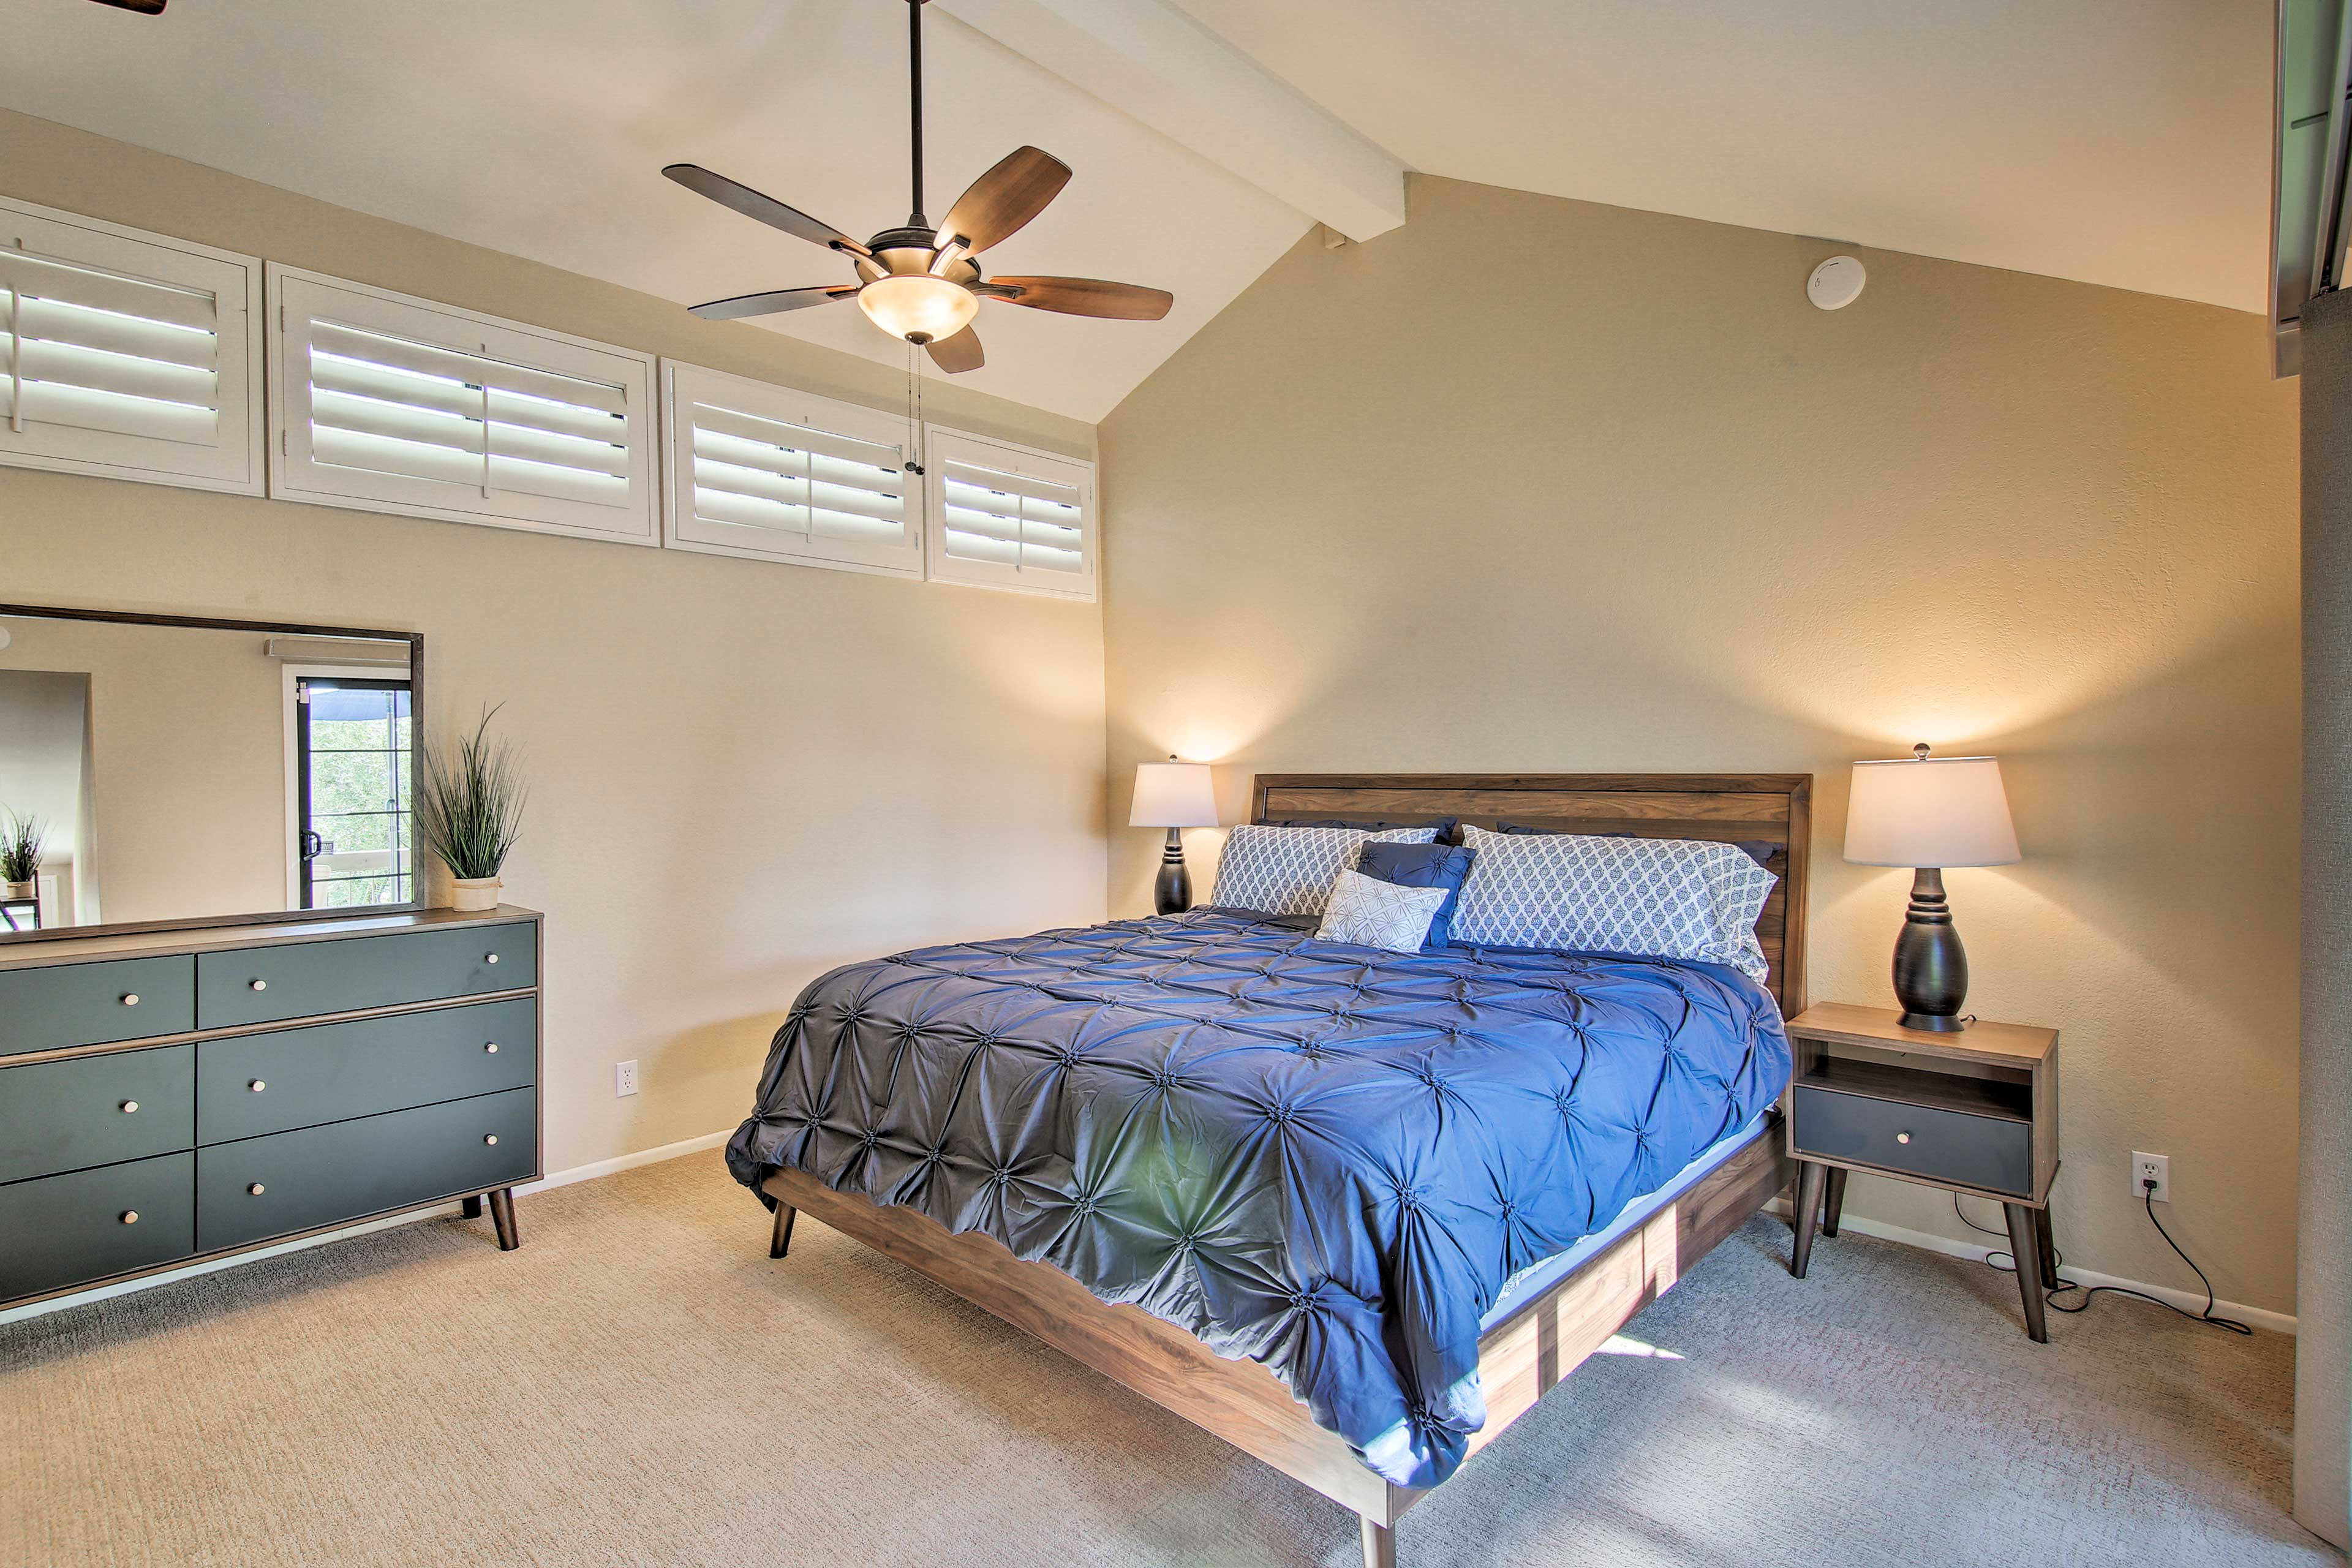 Claim the 2nd-floor master bedroom as your own!